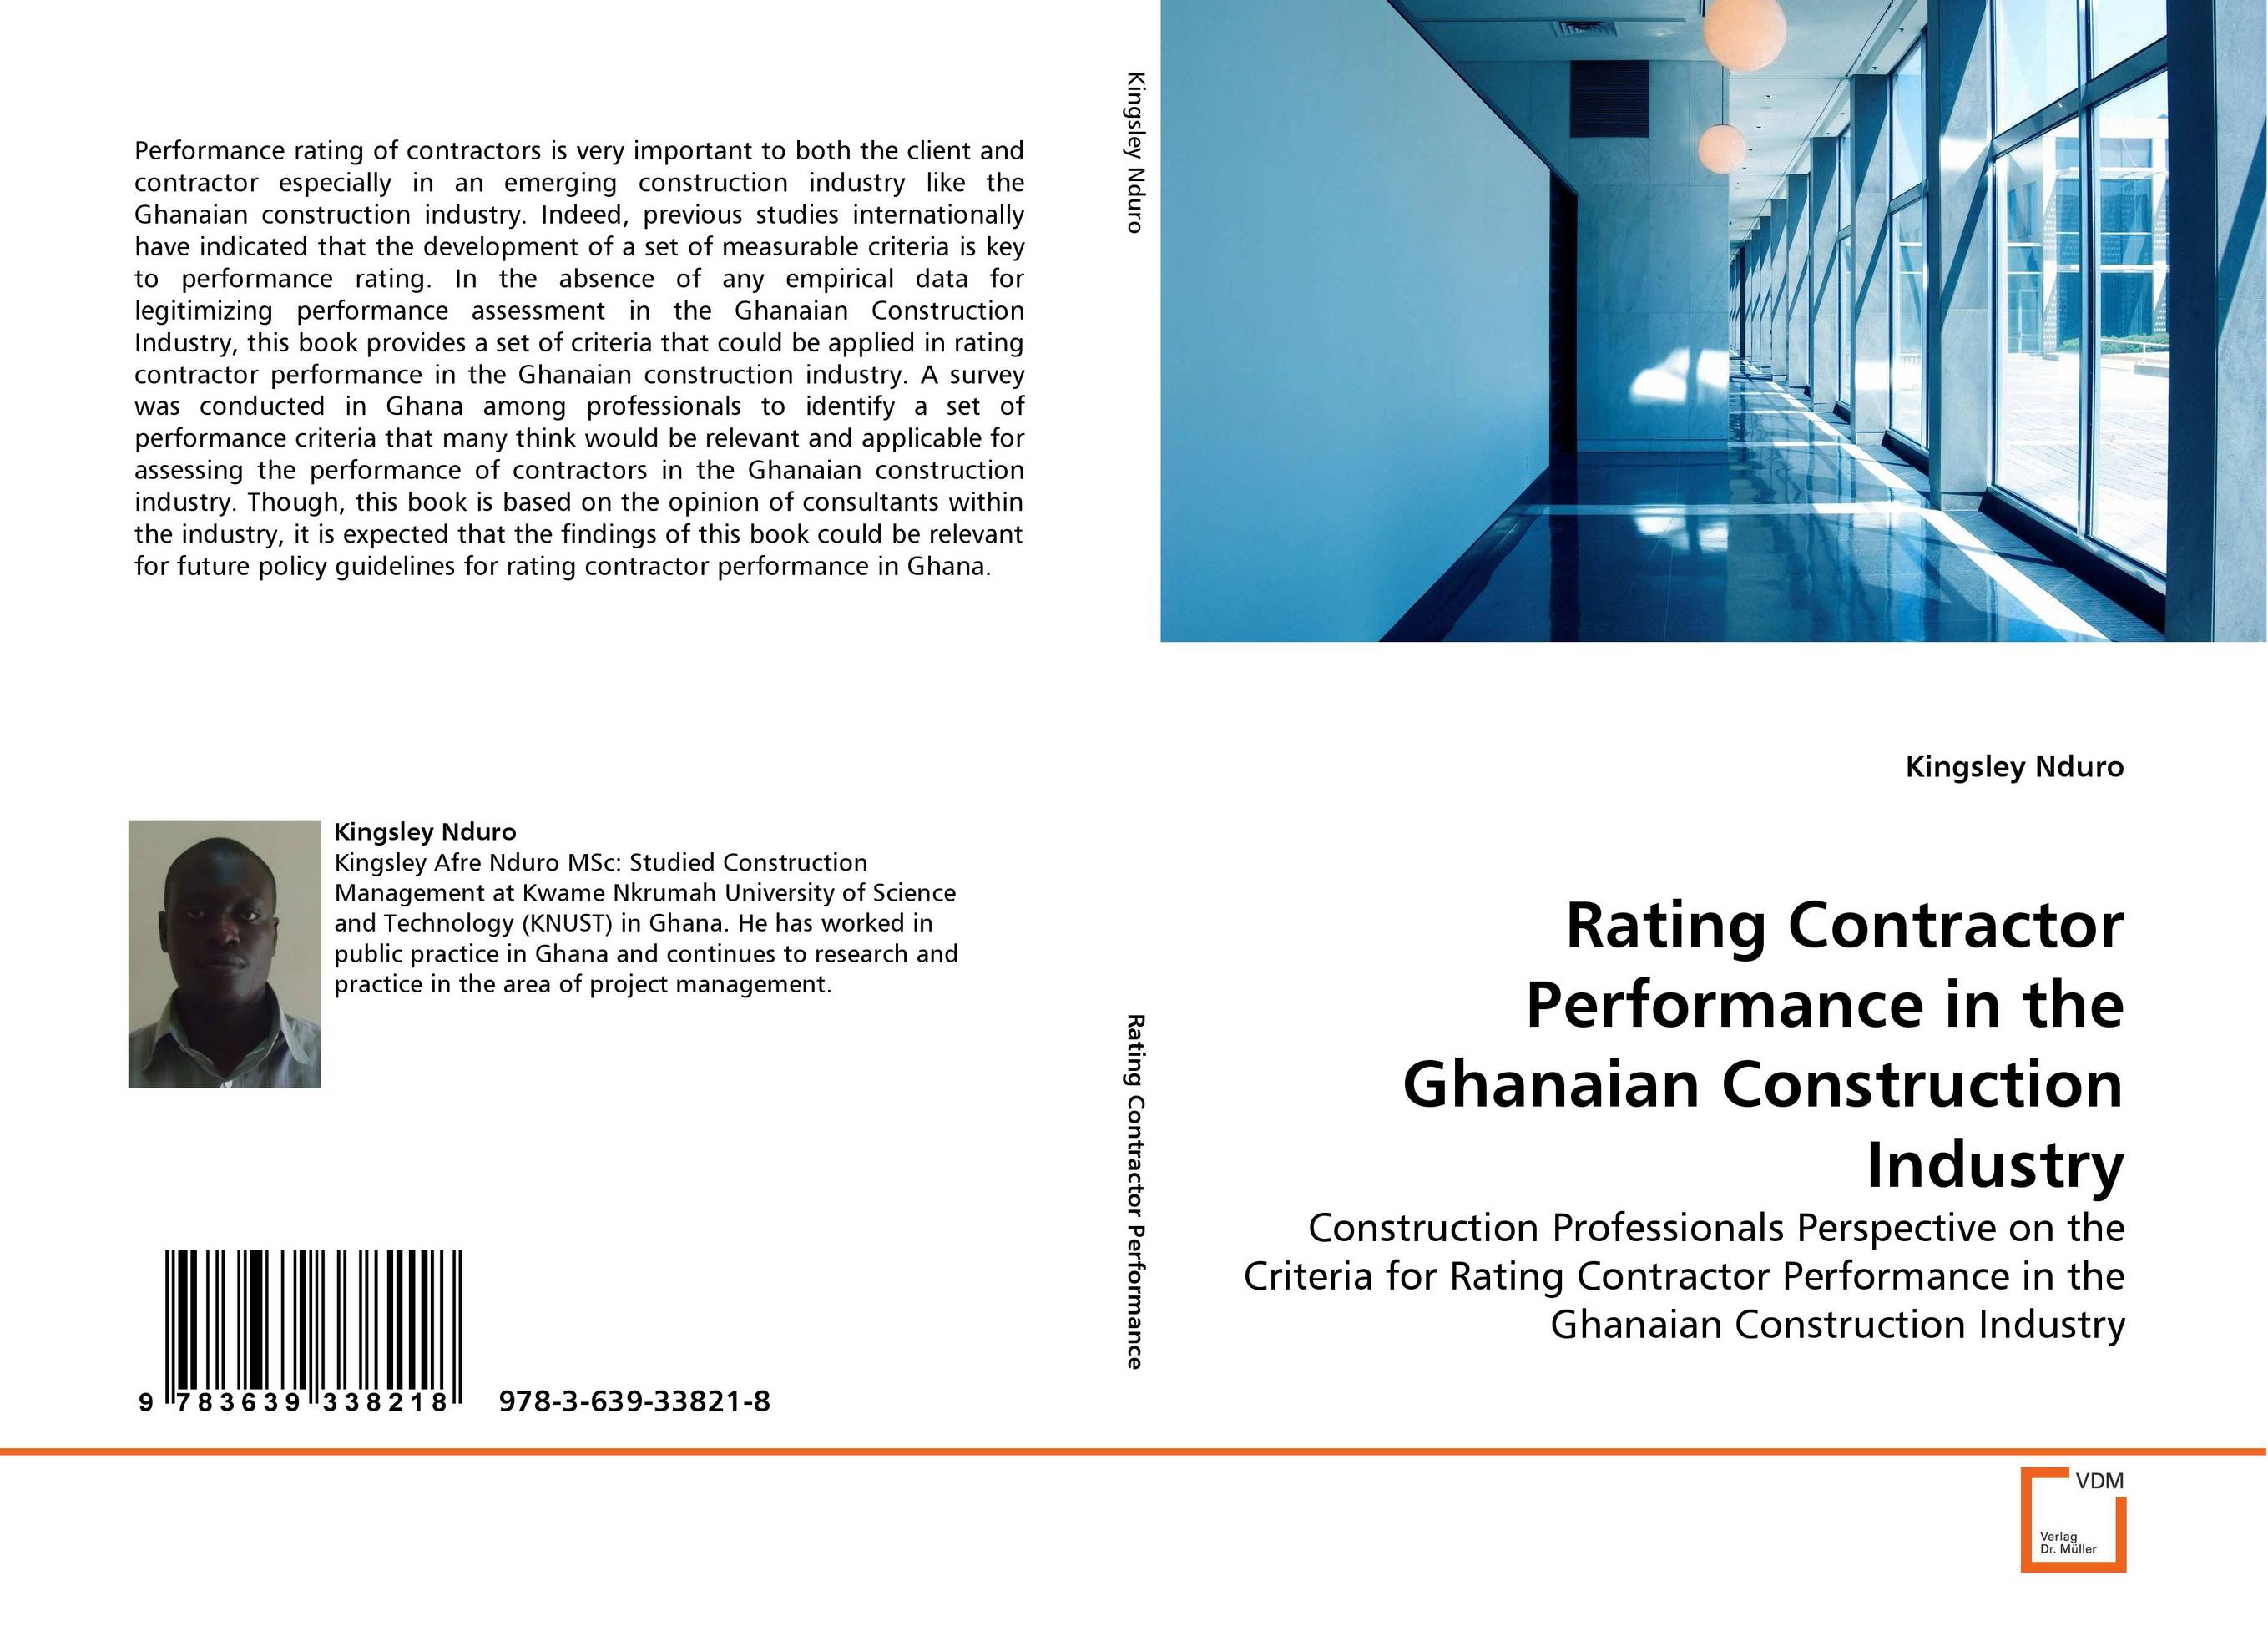 Rating Contractor Performance in the Ghanaian Construction Industry evaluation of vitamin a supplements in ghanaian postpartum mothers